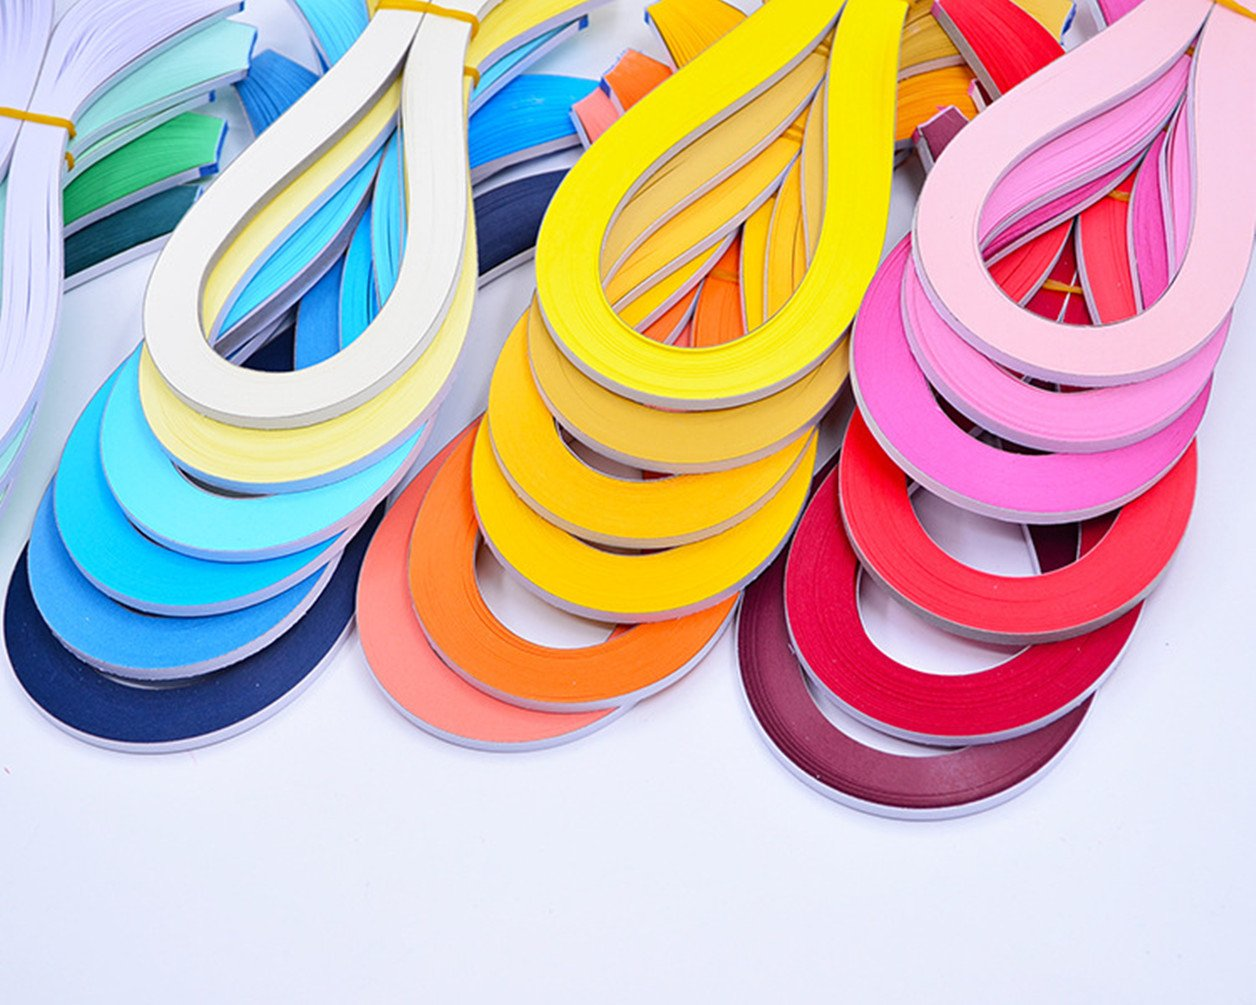 YURROAD Paper Quilling Kits 5mm Wide Paper with 33 Colors 3960 Strips and Slotted Tool (33 Pack 33 Colors) by YURROAD (Image #5)